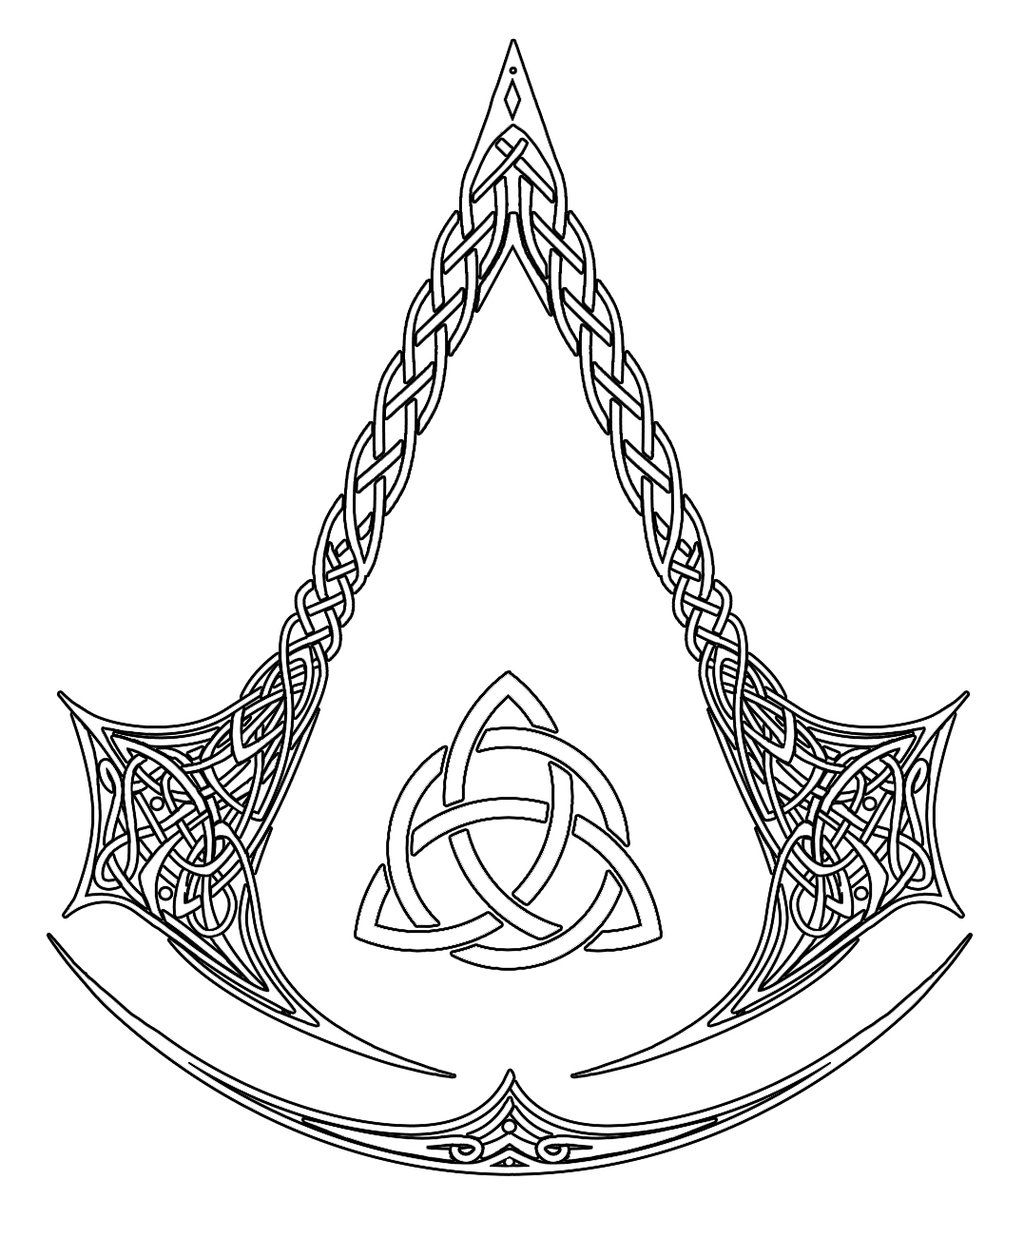 Deviantart More Like Assassin S Creed Logo Tattoo Commission By